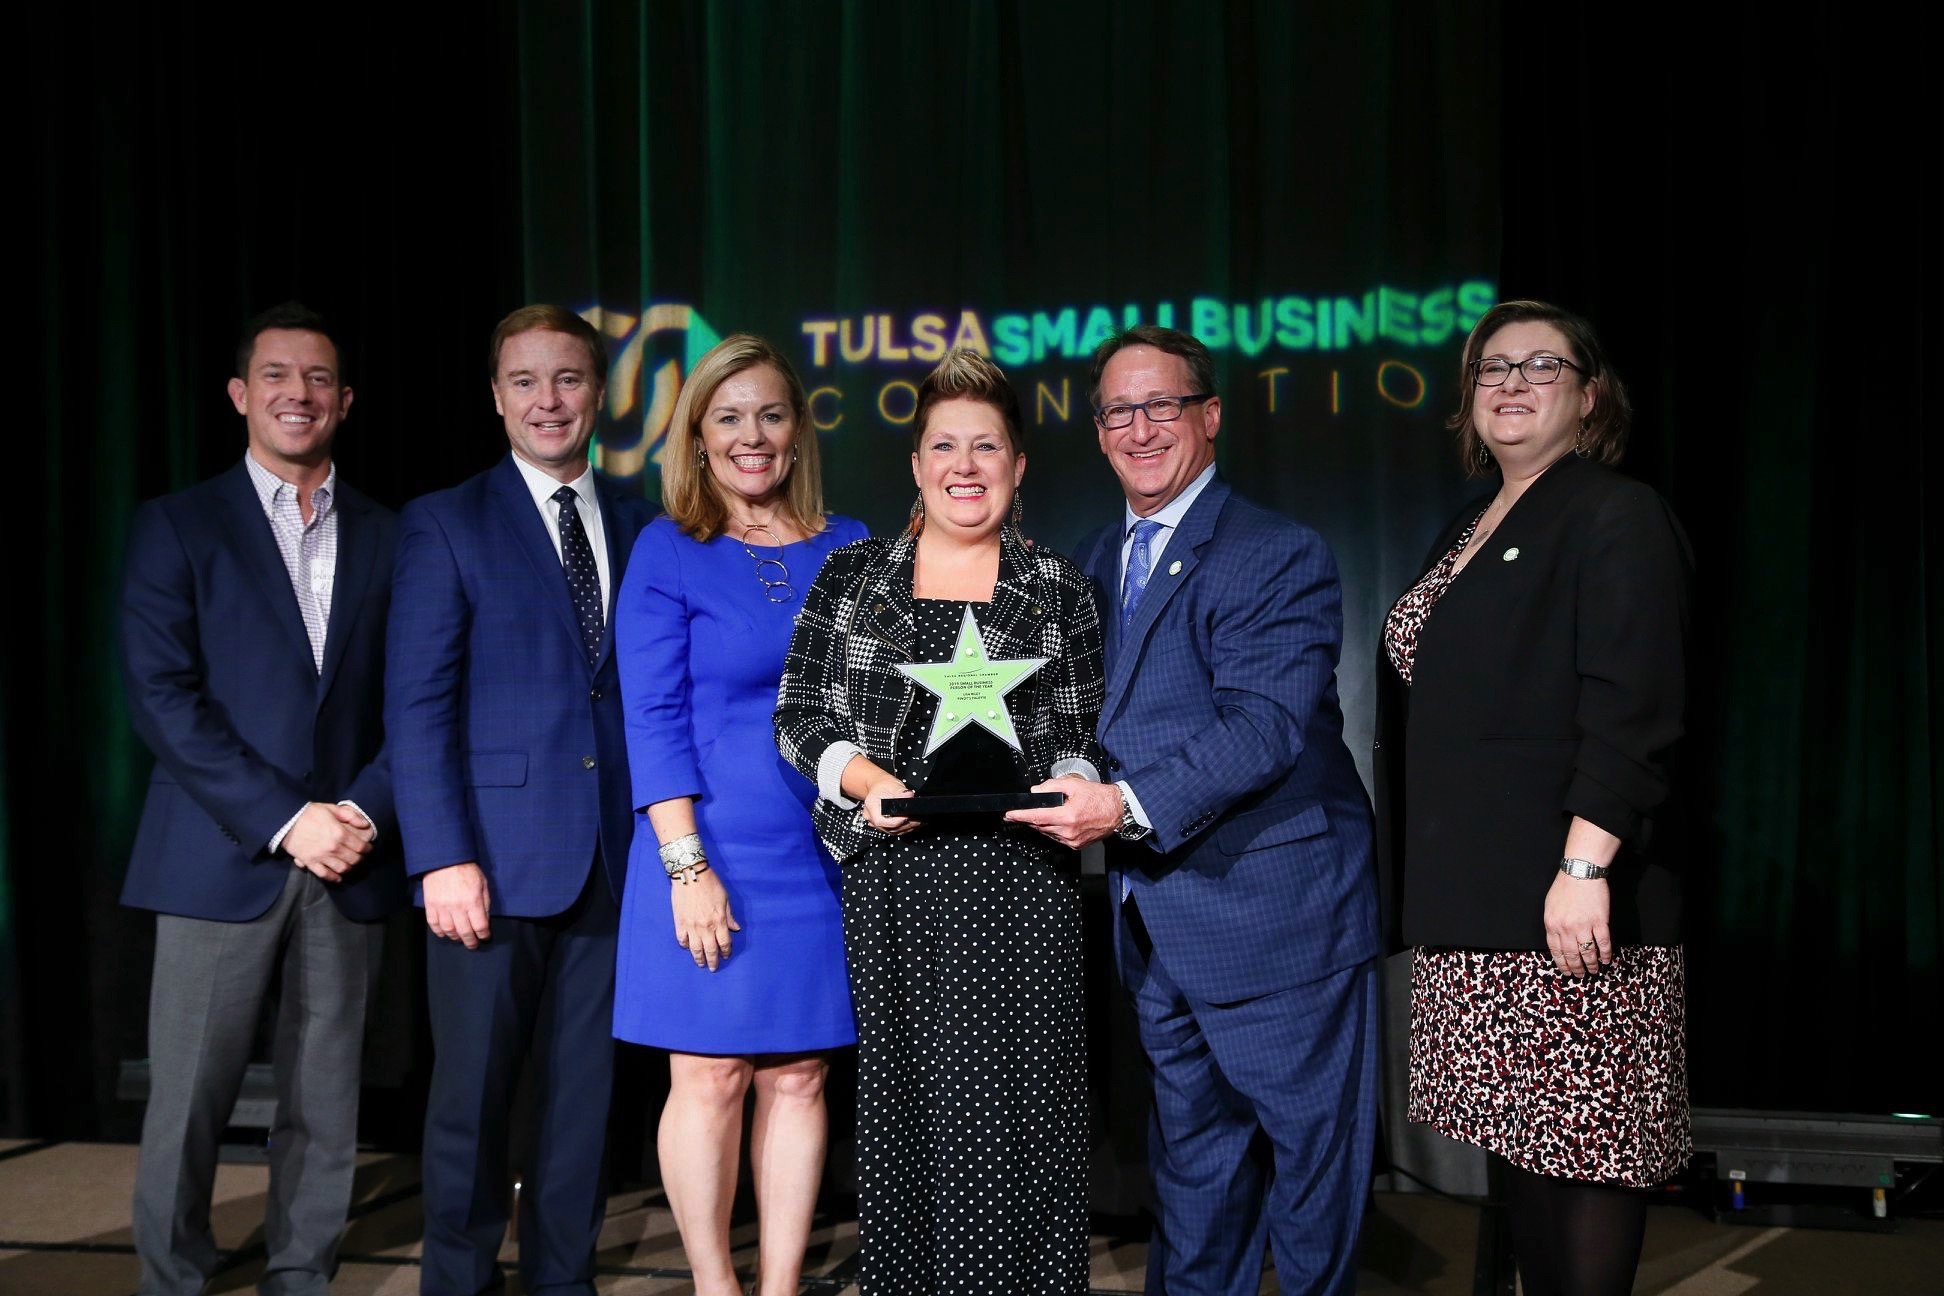 Tulsa Area Paint and Sip Owner named 2019 Small Business Person of the Year!